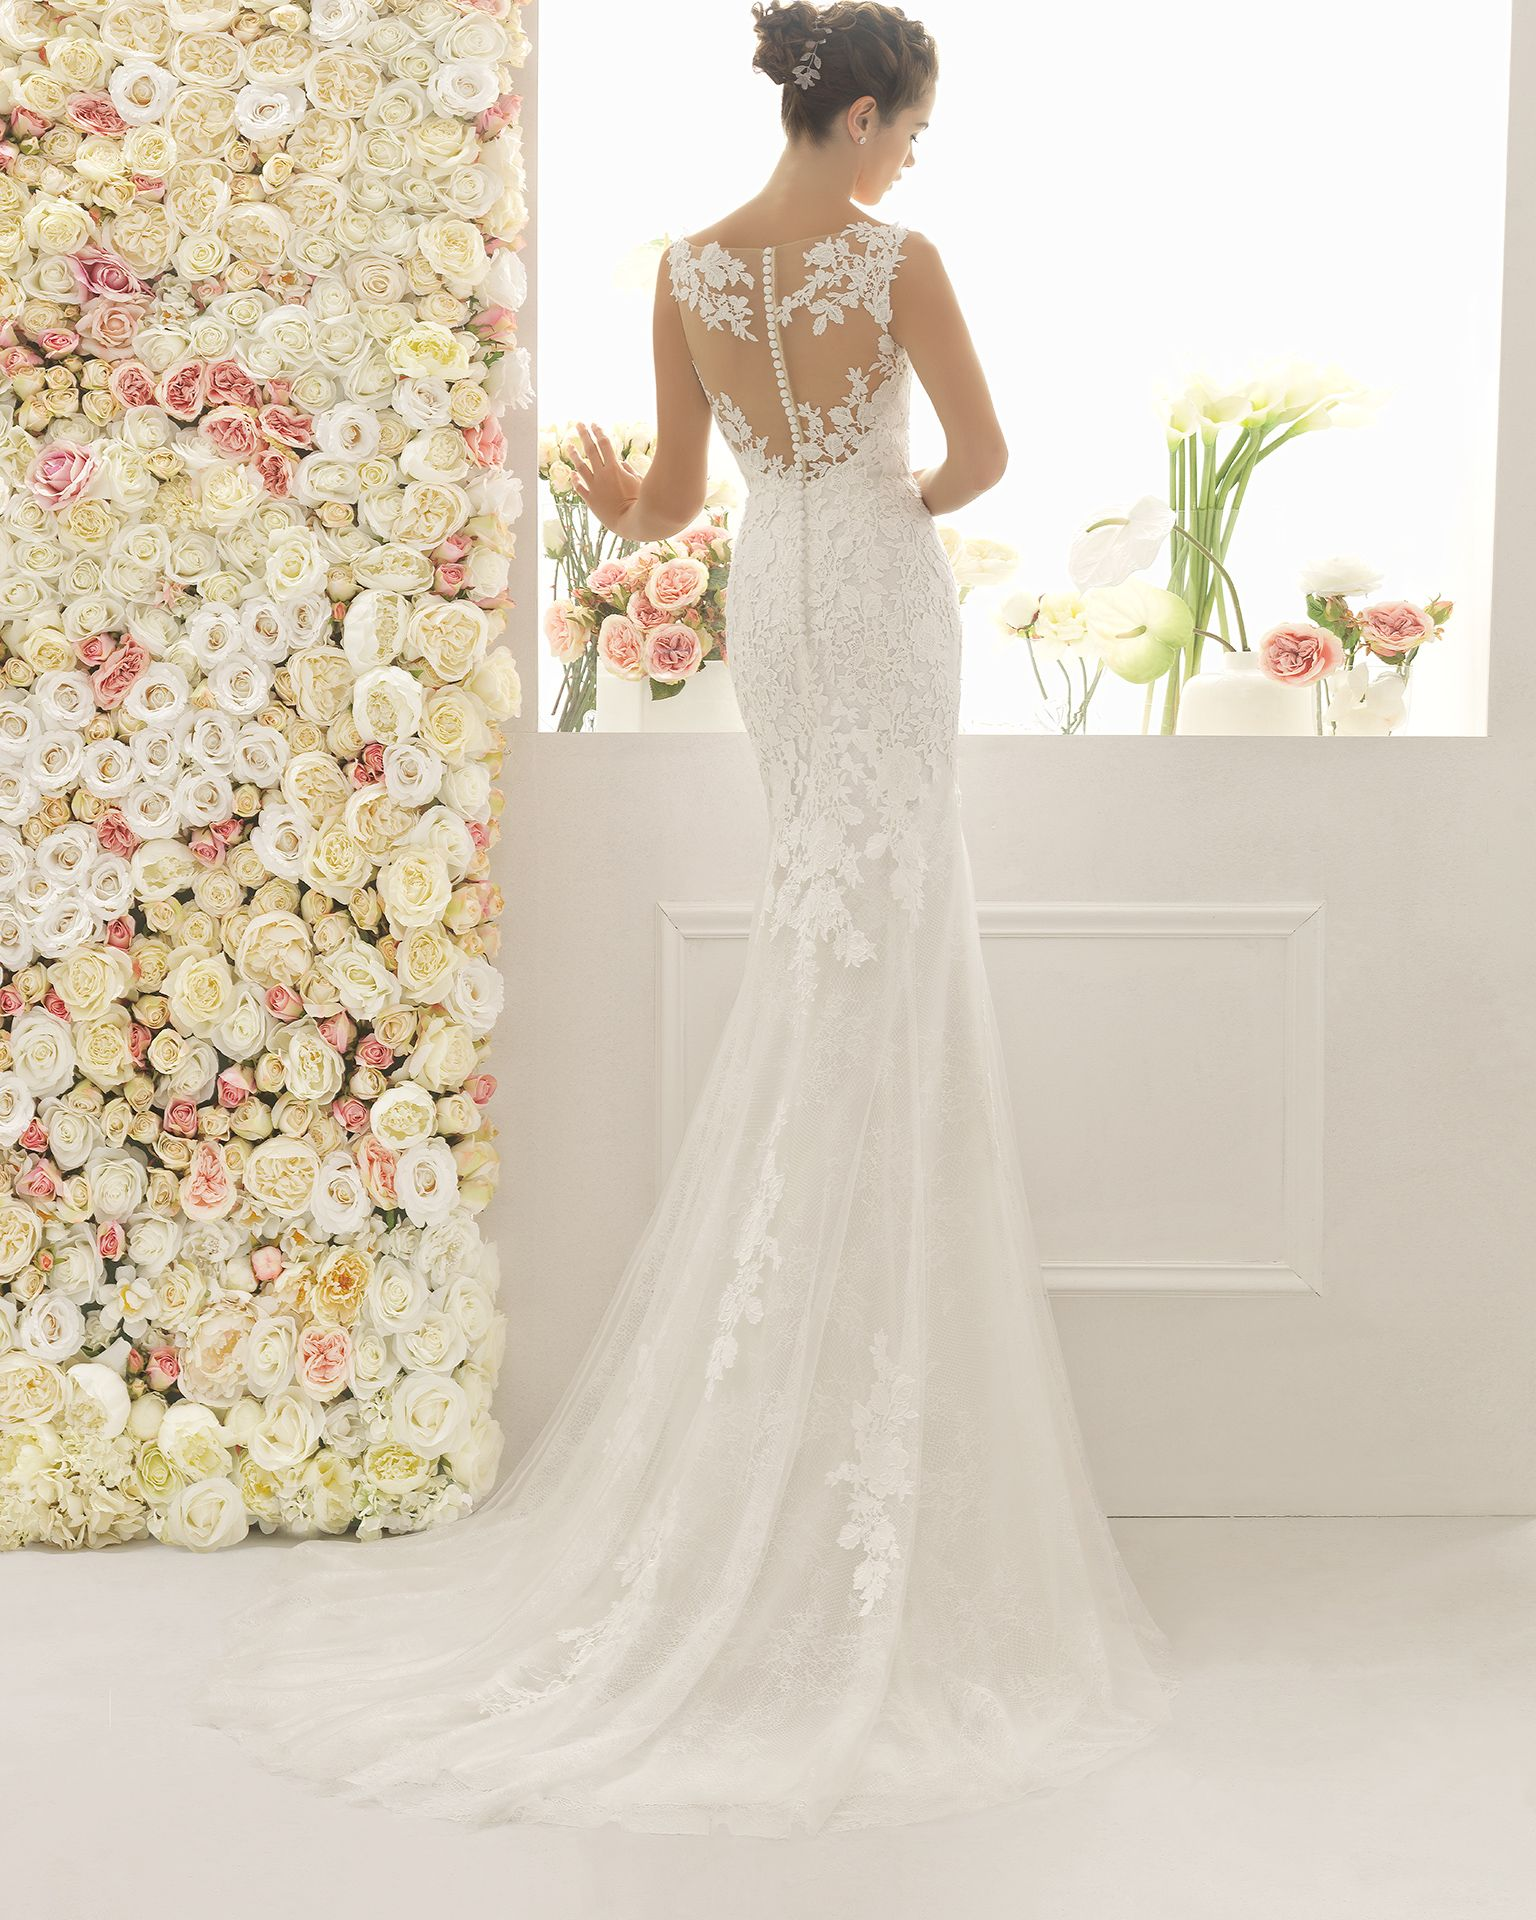 Pin by elaine hamer on wedding dresses pinterest lace wedding